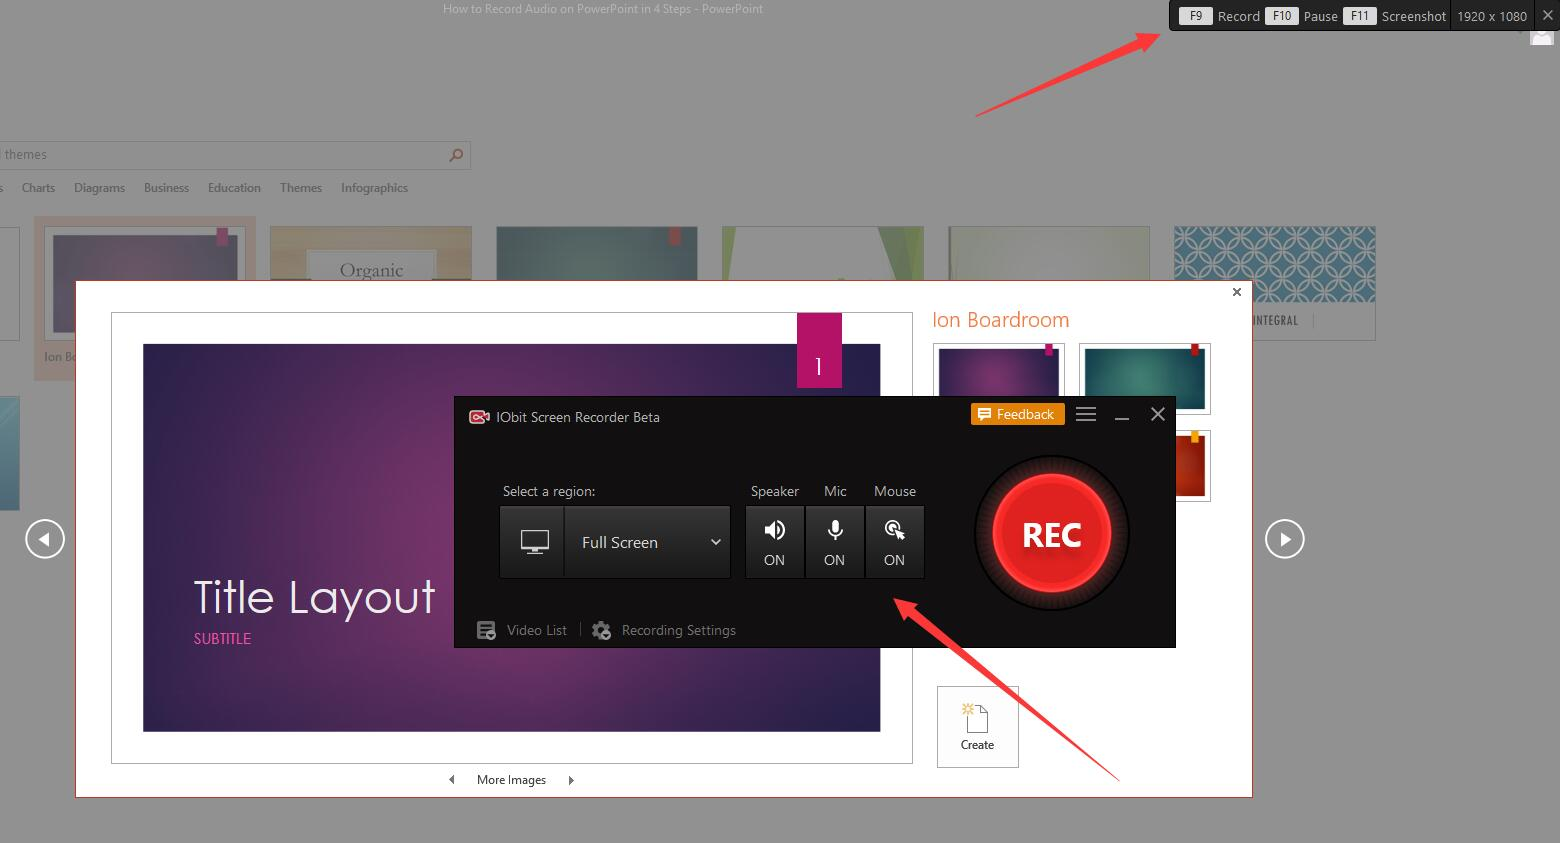 How To Record Audio On PowerPoint In 4 Steps - Step 3 Start Recording